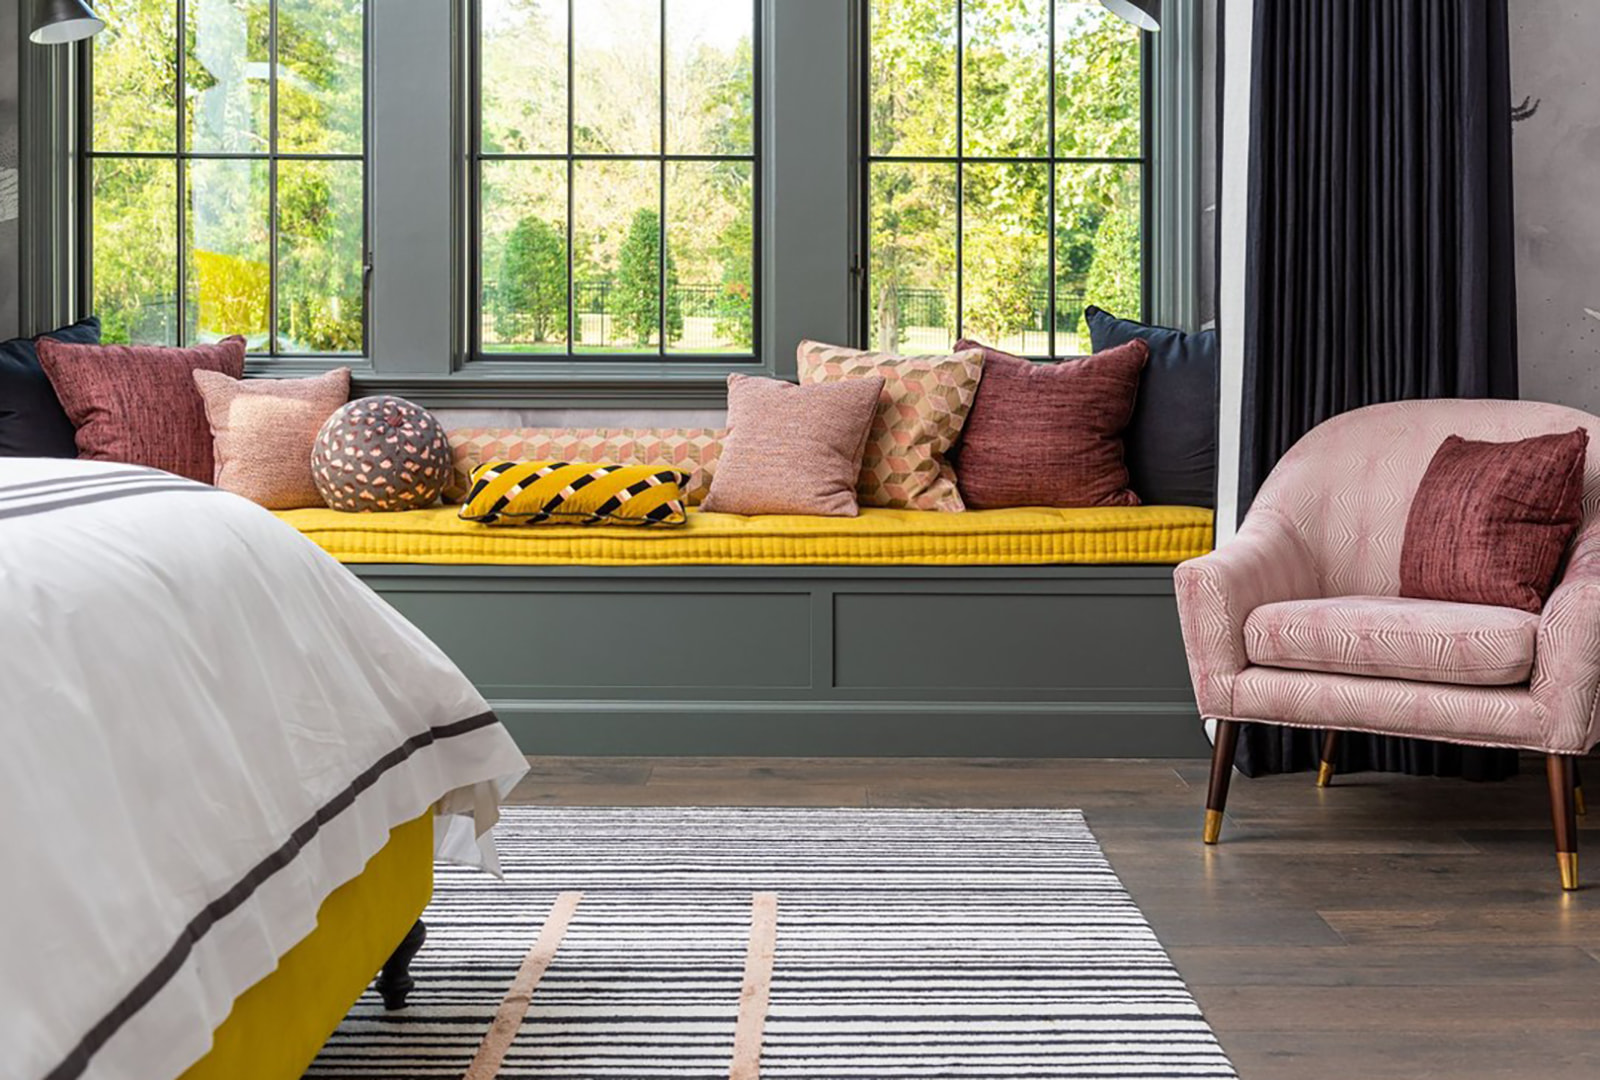 A modern bedroom with pink and yellow décor, and three windows above a seating area.